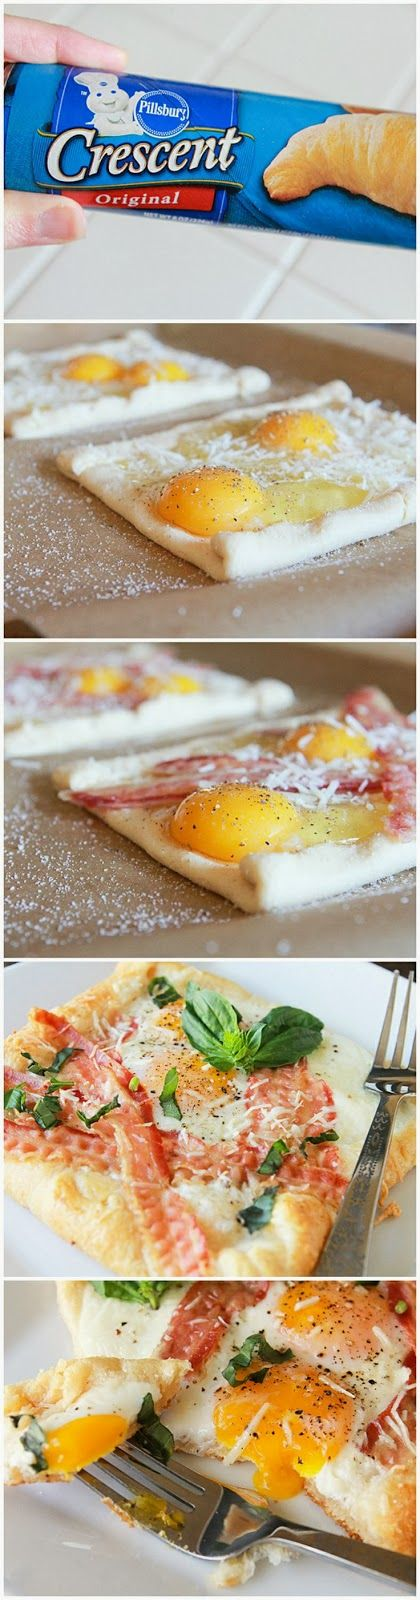 Bacon and egg crescent squares. These look so delicious!